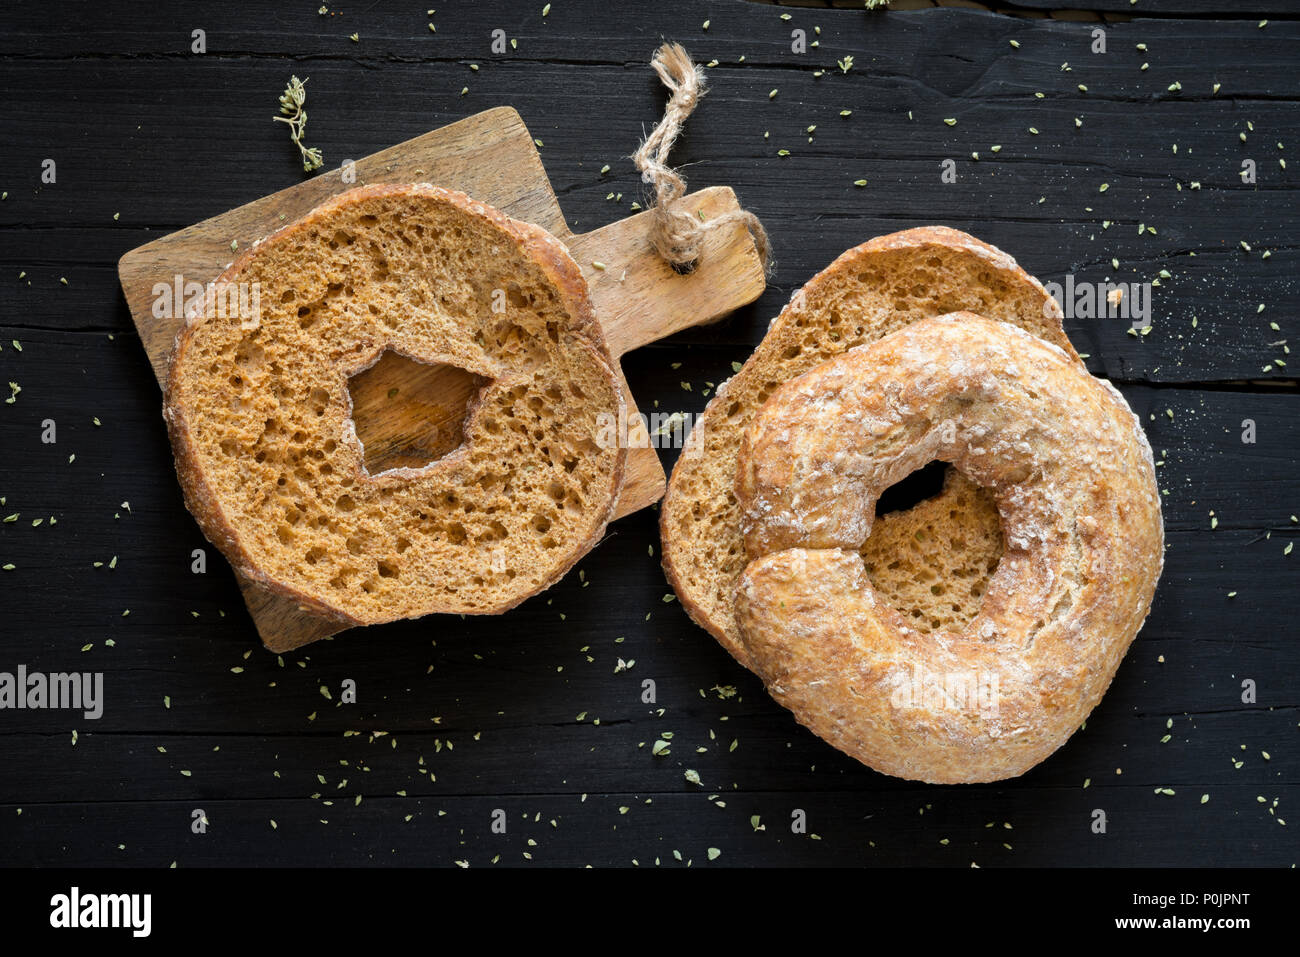 dried bread called freselle, soaked in the water to be served with olive oil and sliced tomato, tuna and olives - Stock Image